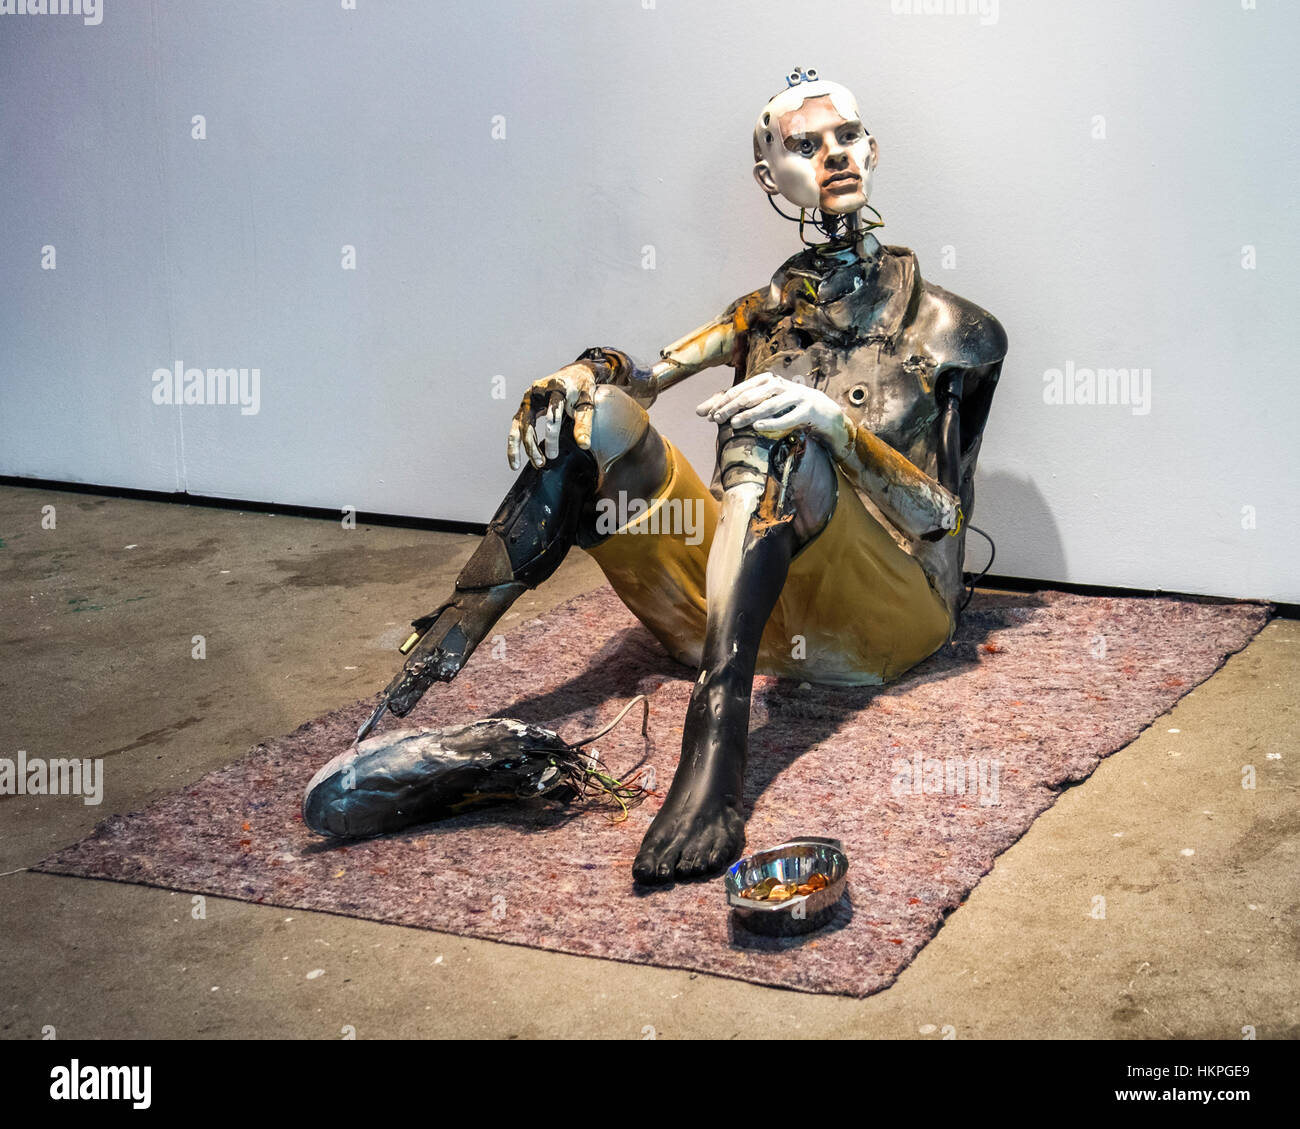 Berlin Mitte. Disintegrating robot at C-HR Innovation and Creativity Festival in  historic Kaufhaus Jahndorf building - Stock Image